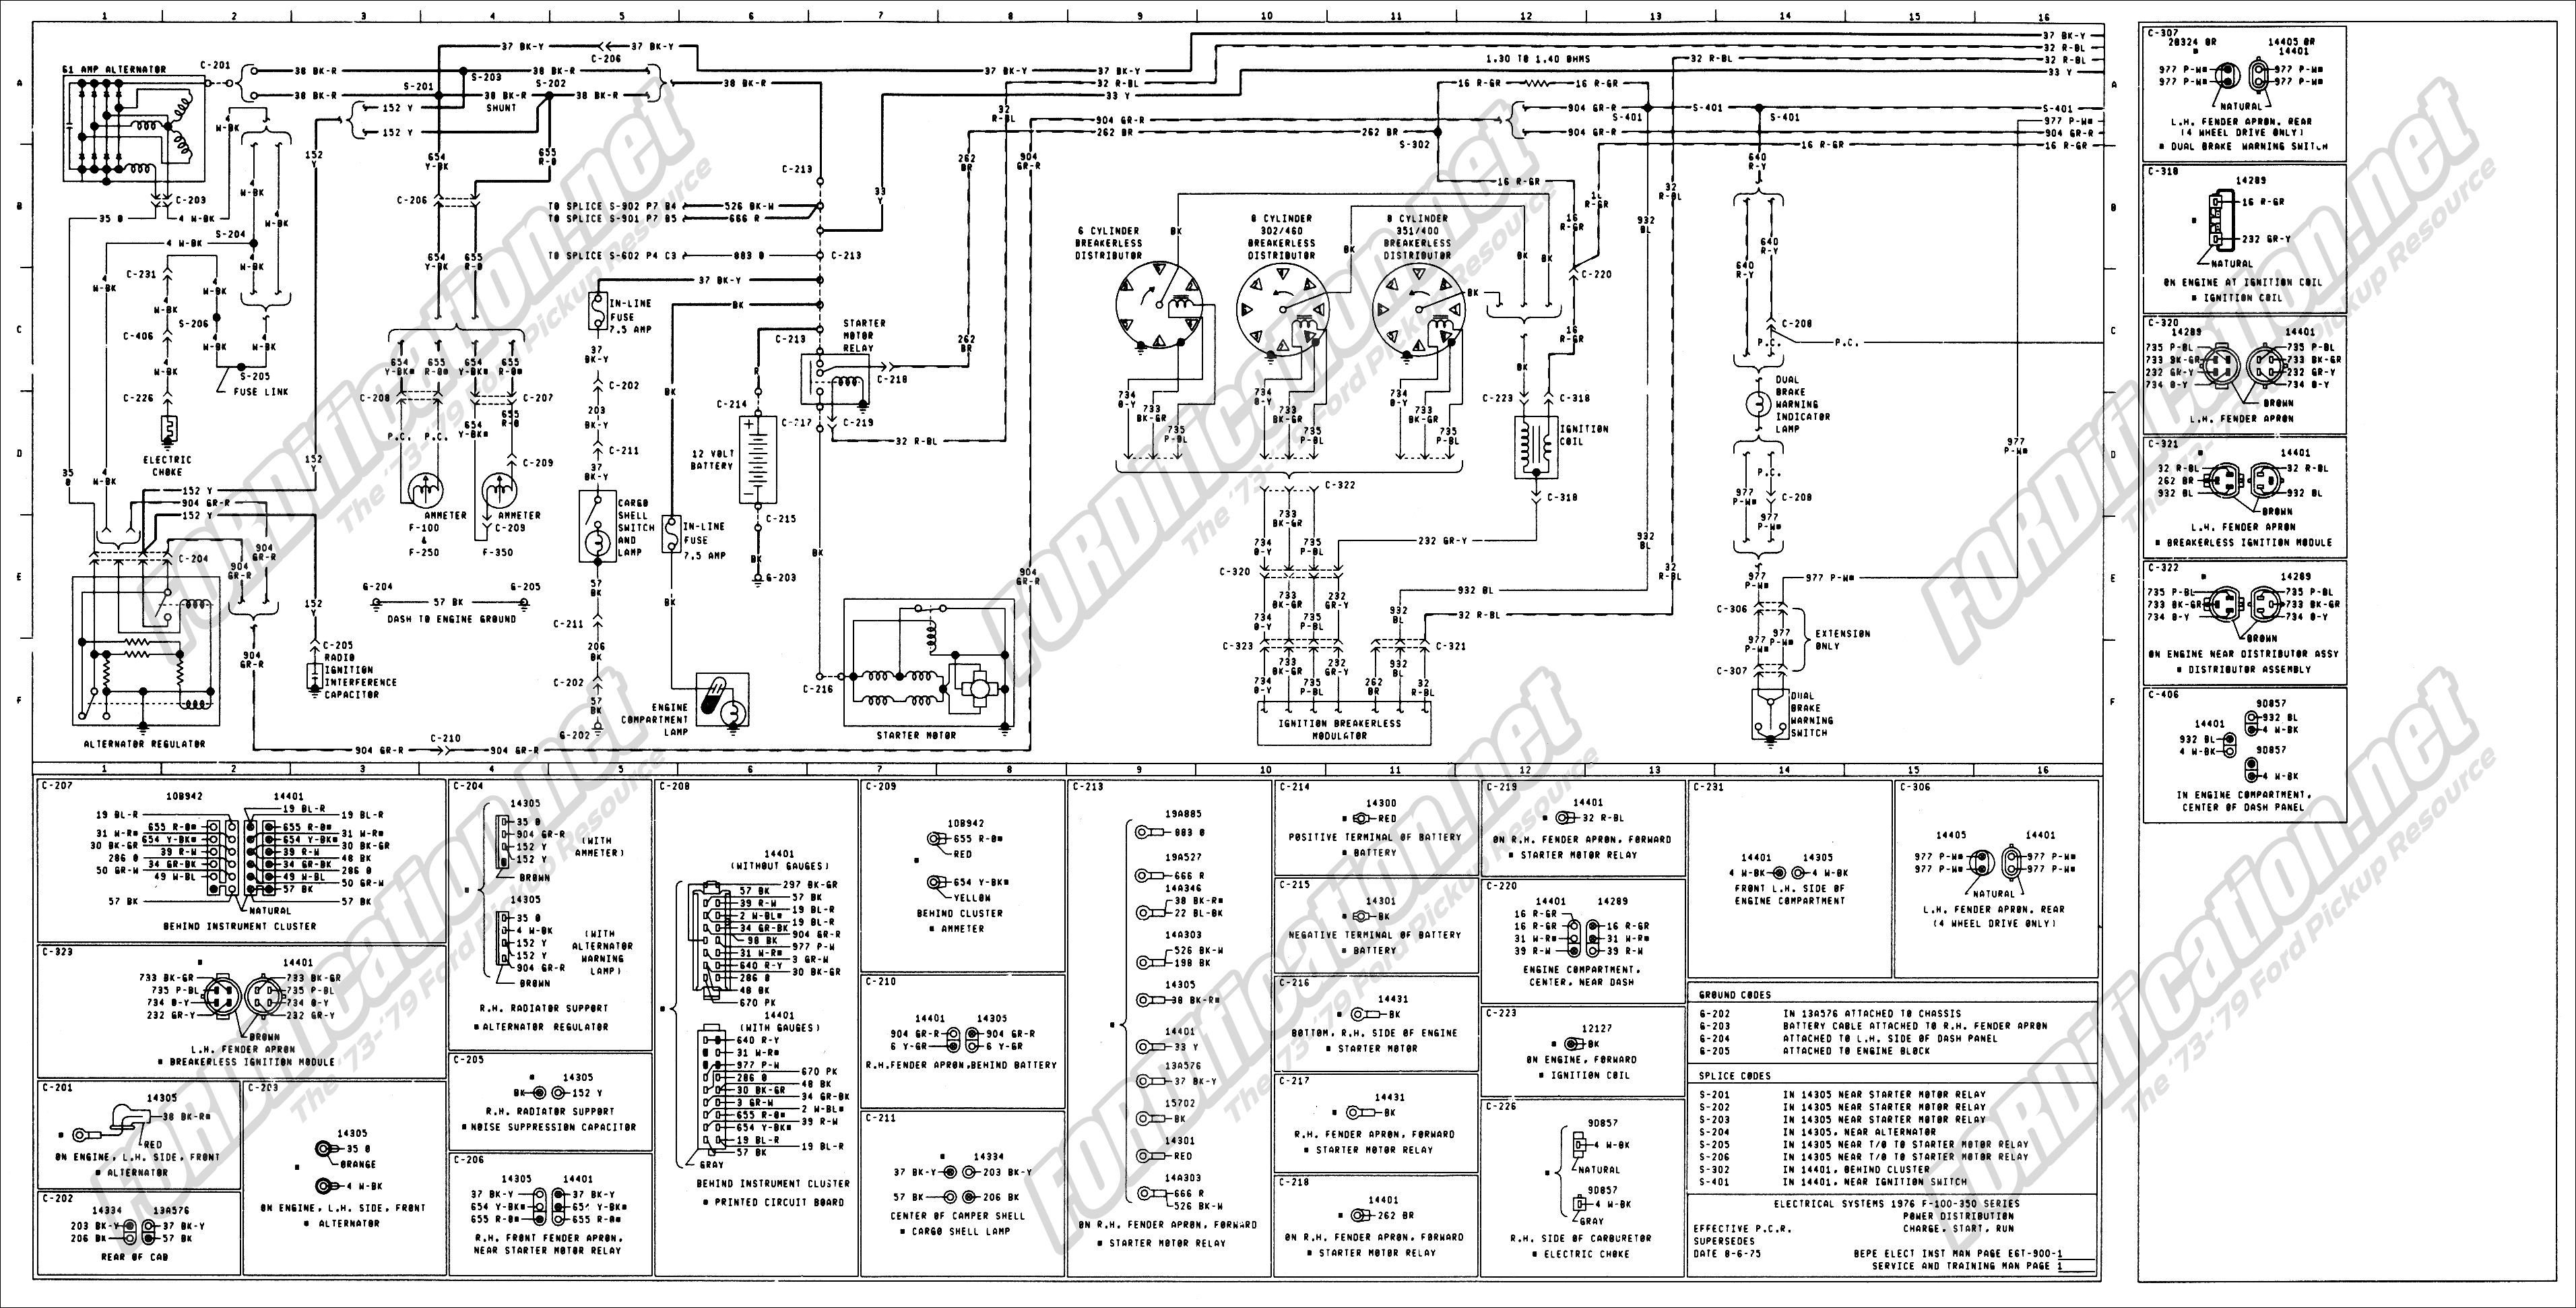 1979 f350 wiring diagram 1973-1979 ford truck wiring diagrams & schematics ... 1979 scottsdale wiring diagram